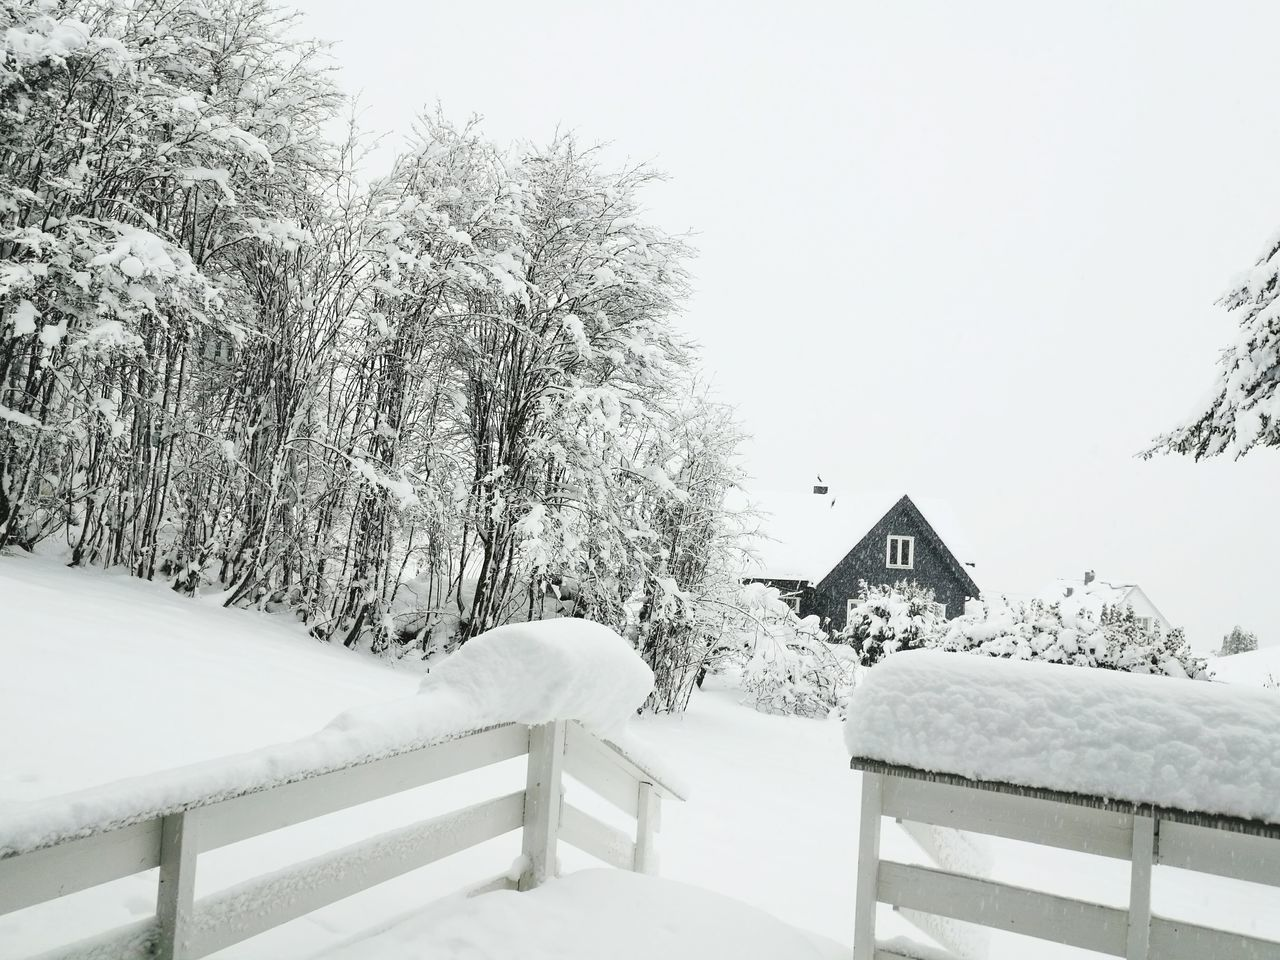 winter, snow, cold temperature, weather, nature, white color, frozen, outdoors, tree, clear sky, day, no people, tranquility, scenics, tranquil scene, beauty in nature, landscape, snowing, sky, building exterior, architecture